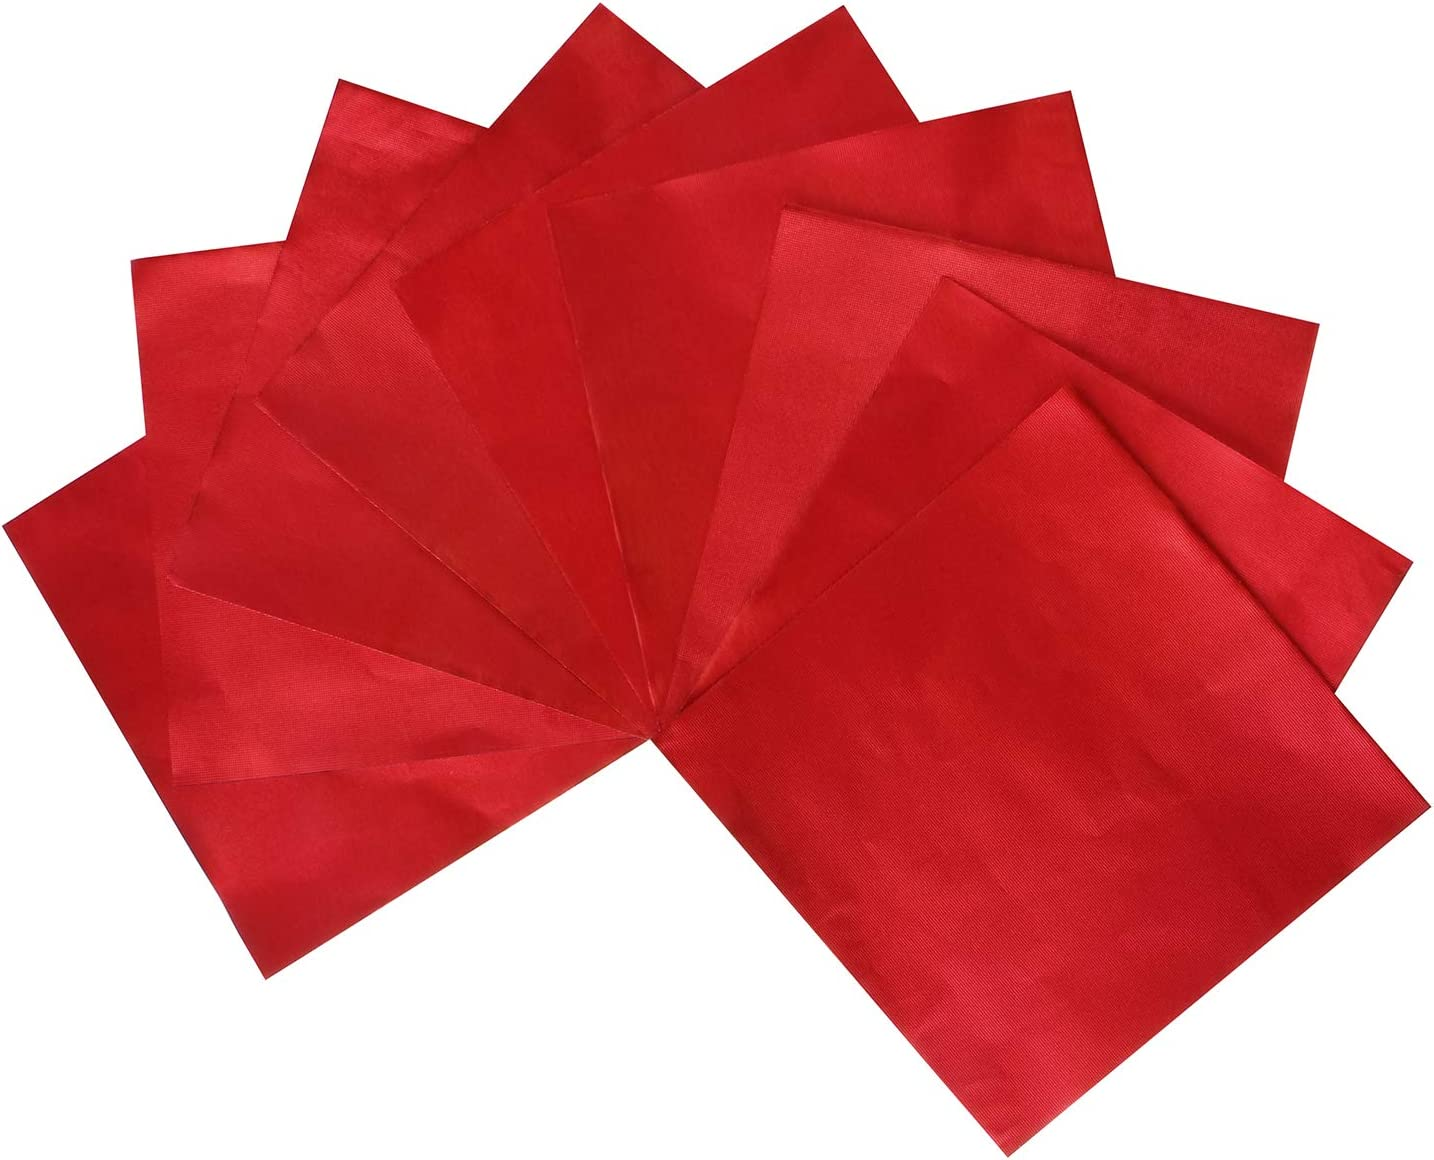 Webake 4 x 4 Inch Square Aluminium Foil Candy Wrappers Candy Wrapping Paper for DIY Chocolate, Fudge and Brownies Packaging-100 Piece (Red)